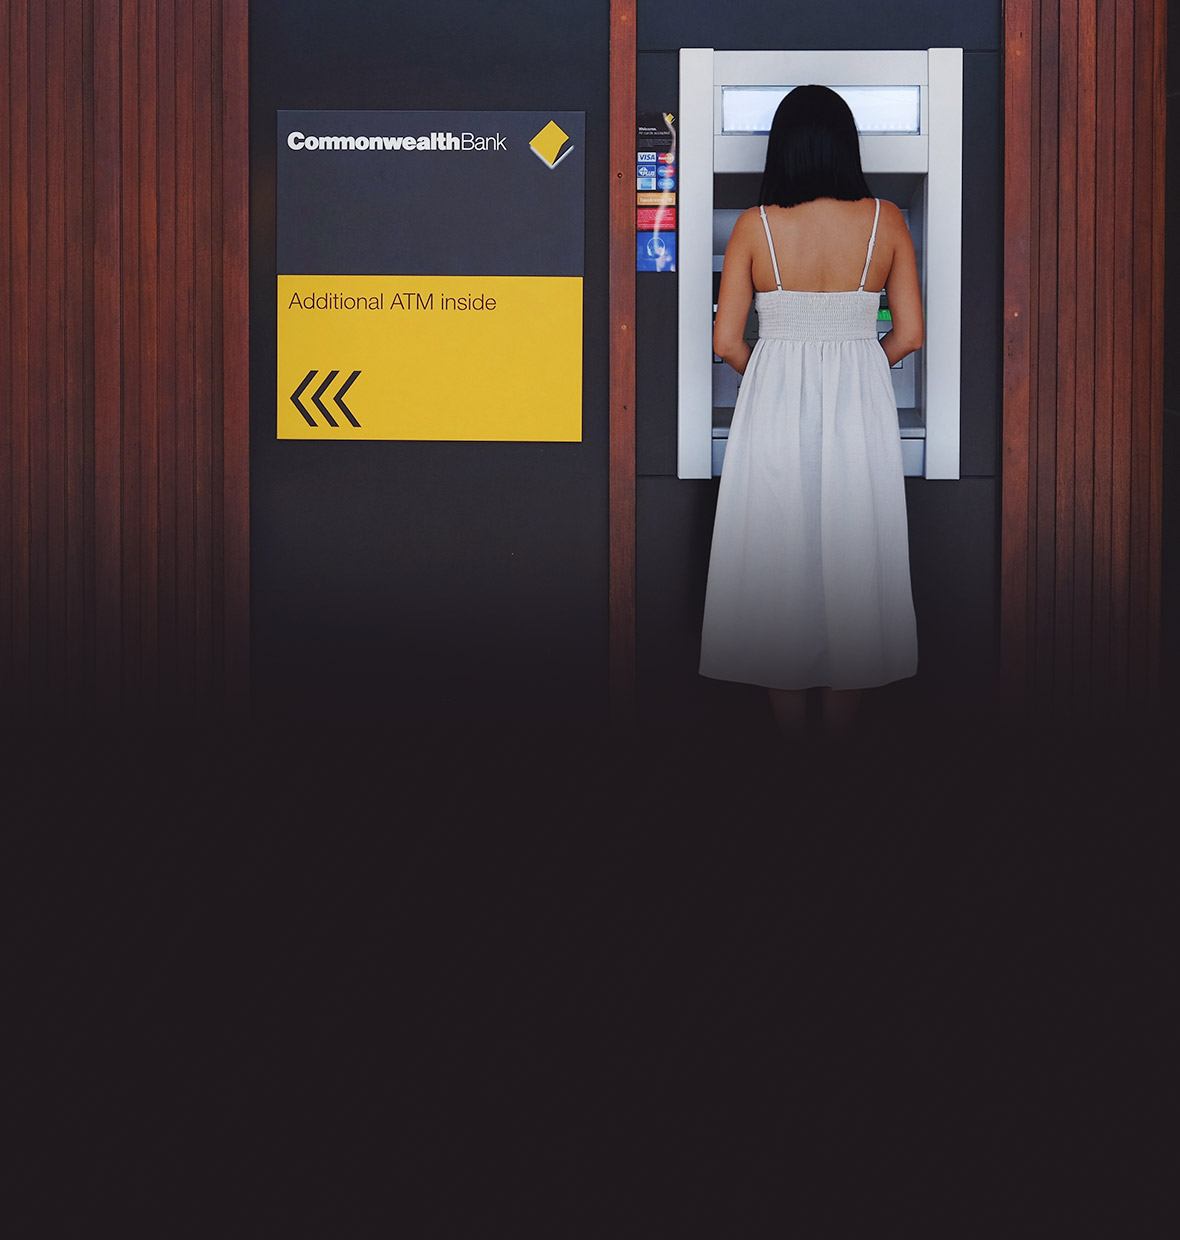 woman at CommBank ATM